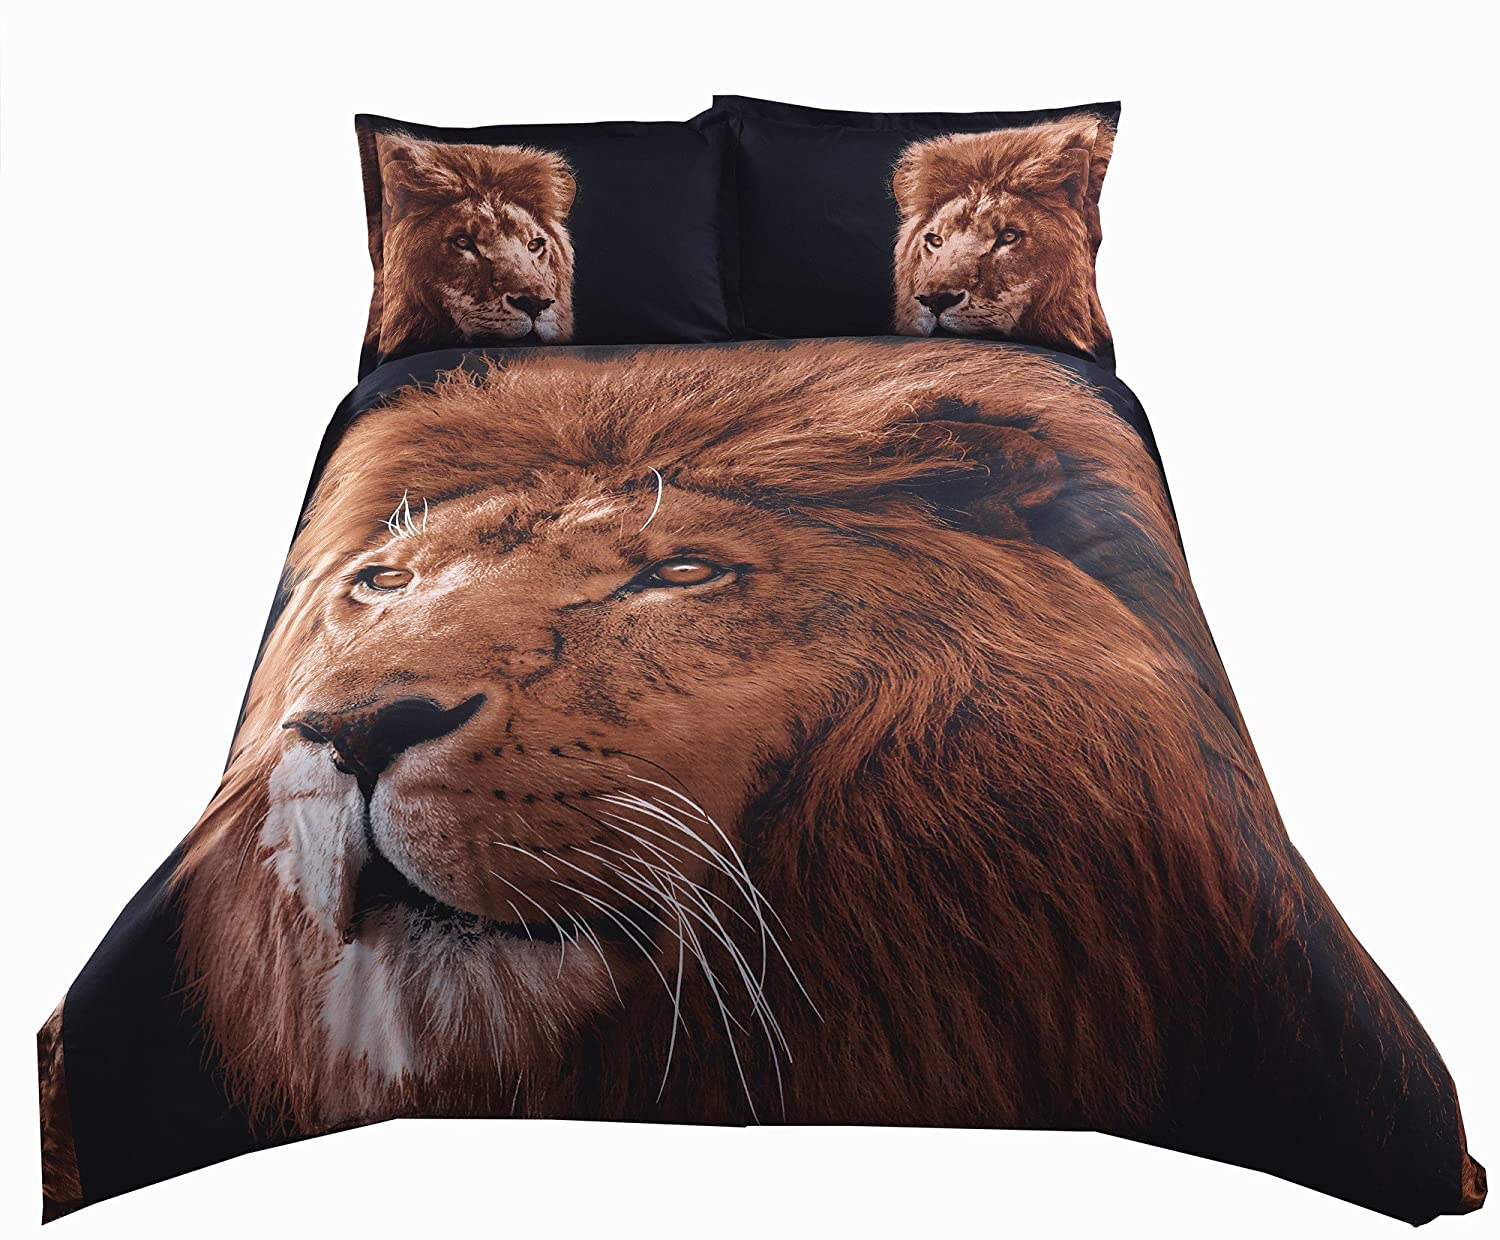 ENCOFT Lion with Black Background Print 3D Bedding Sets Twin Size for Kids Duvet Cover Set with Flat Sheet Polyester 4 Pieces,1 Duvet Cover Sets,1 Flat Sheet,2 Pillow Cacses,No Comforter(Twin)